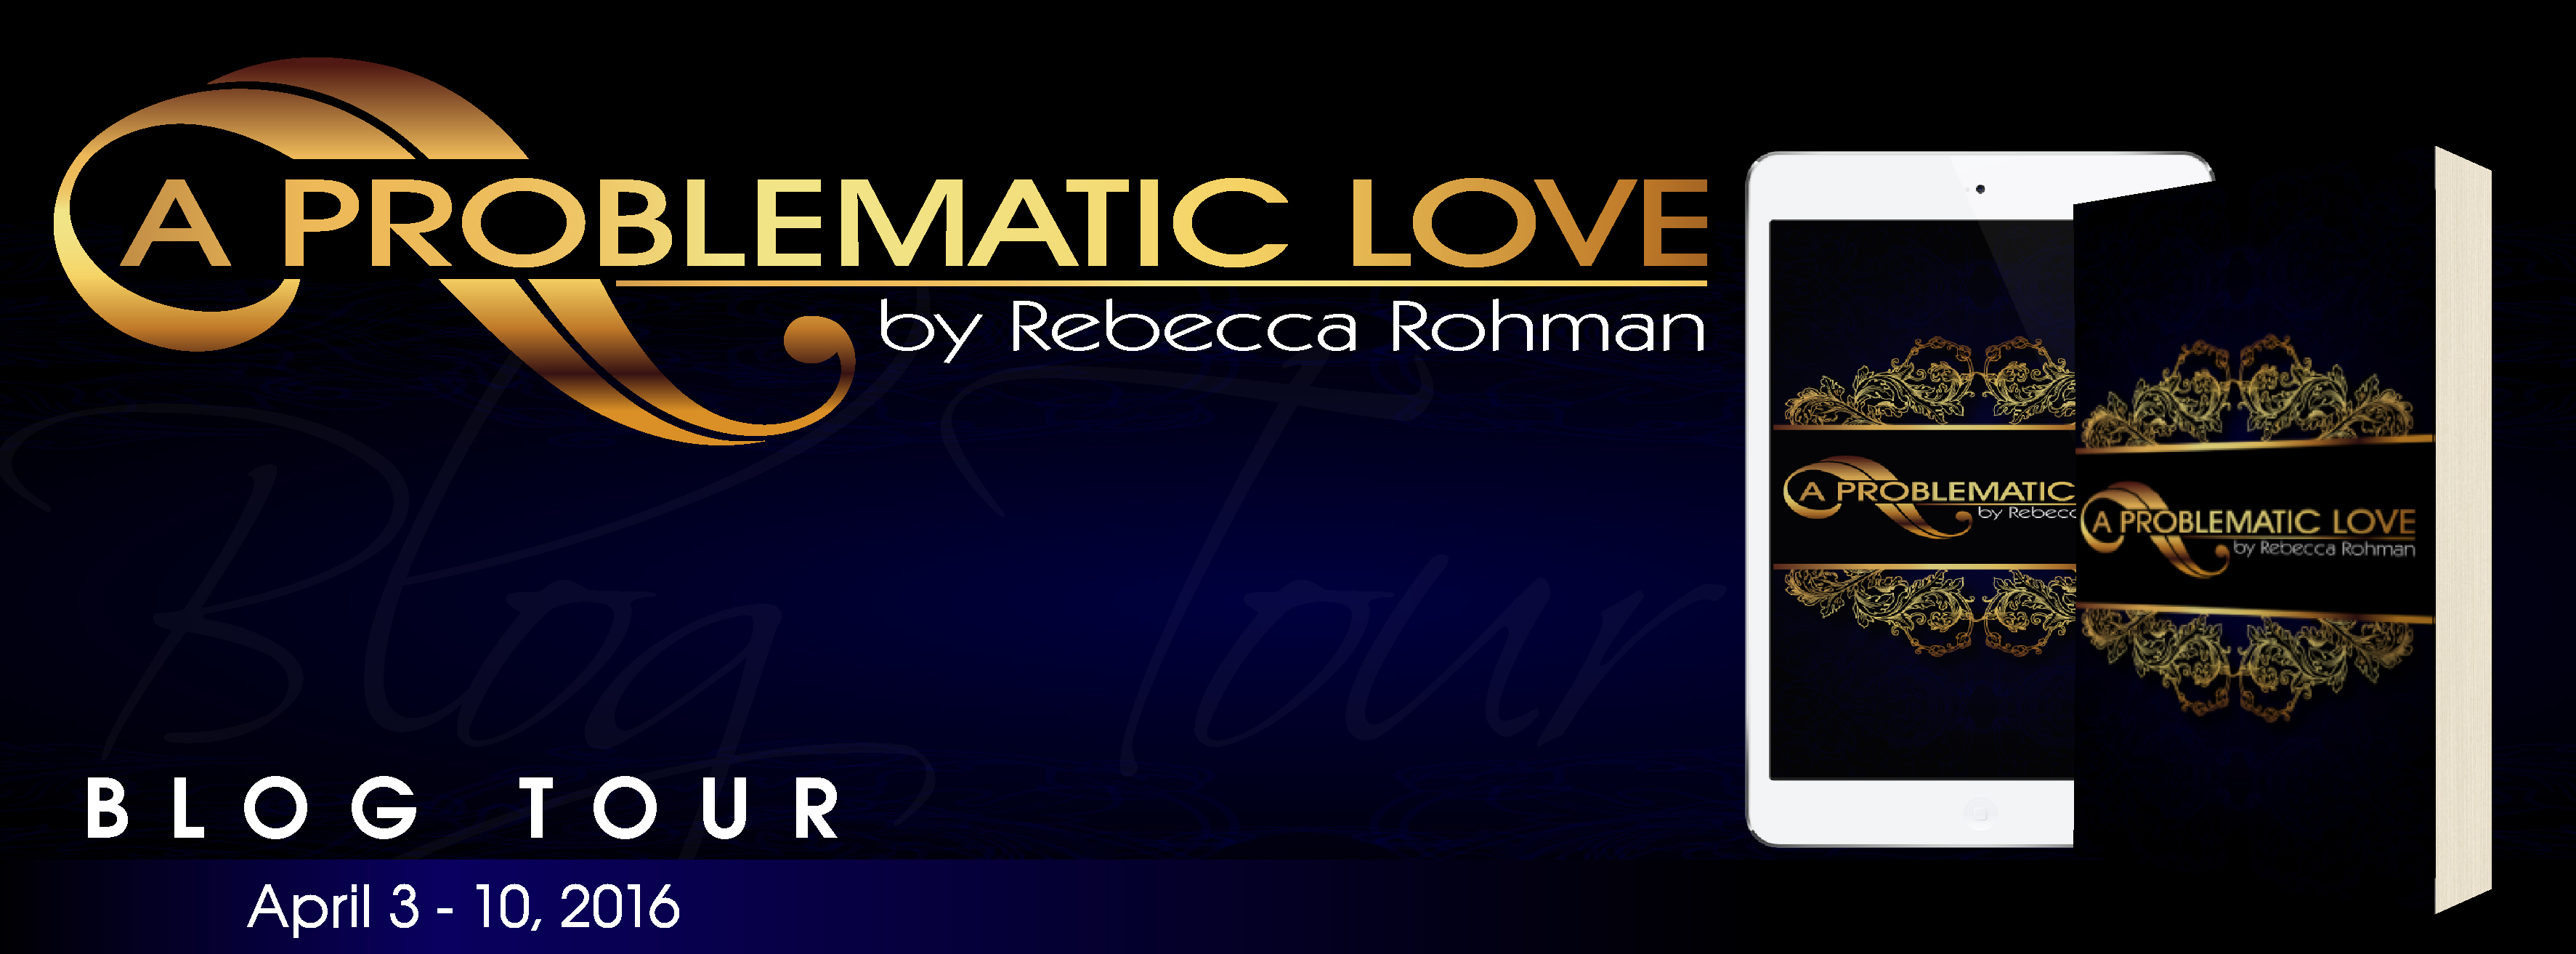 A Problematic Love Blog Tour Banner